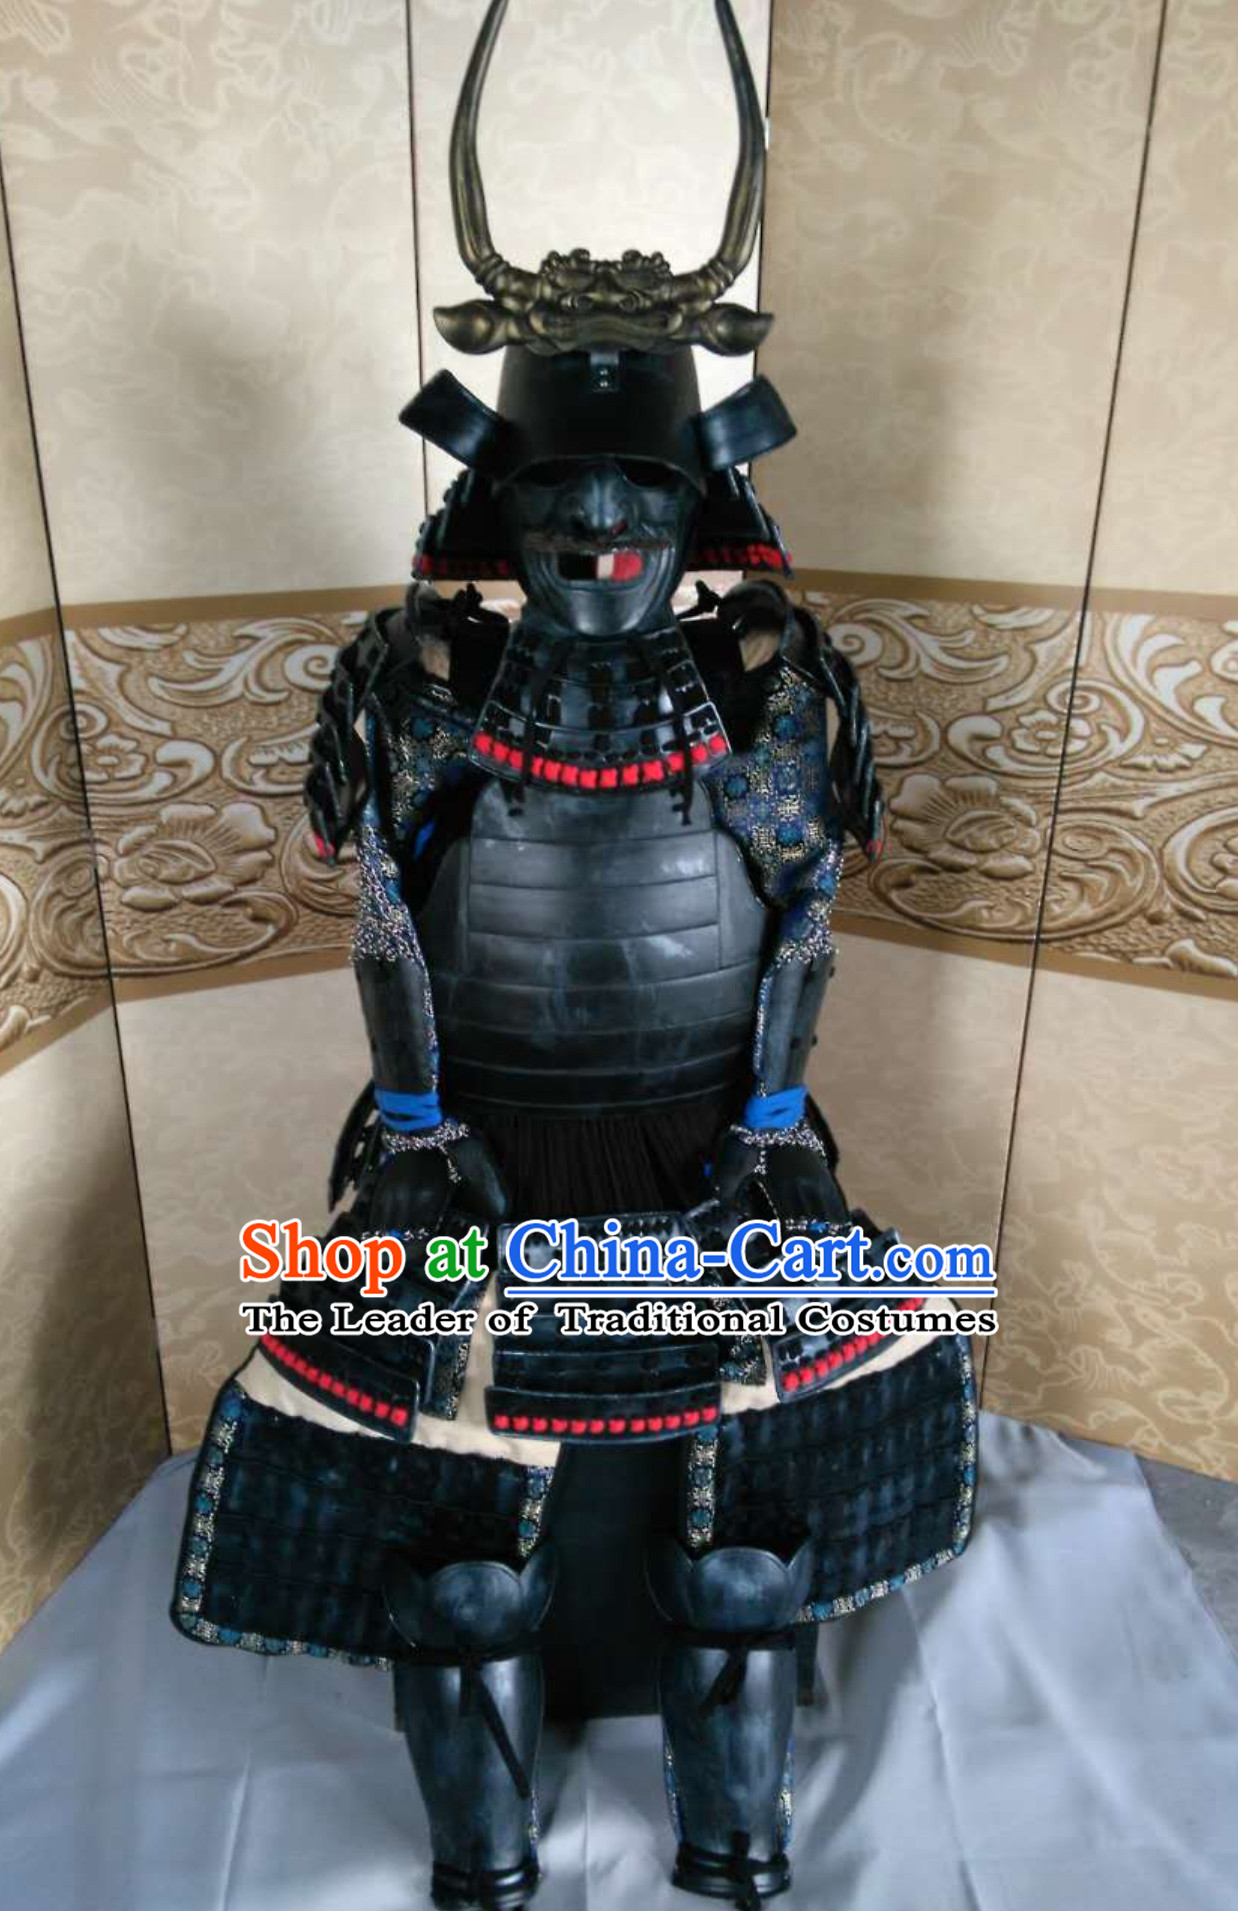 Ancient Asian Classical Japanese Samurai Armor Buy Replica Authentic Samurai Outfit Clothes Complete Set for Men for Sale